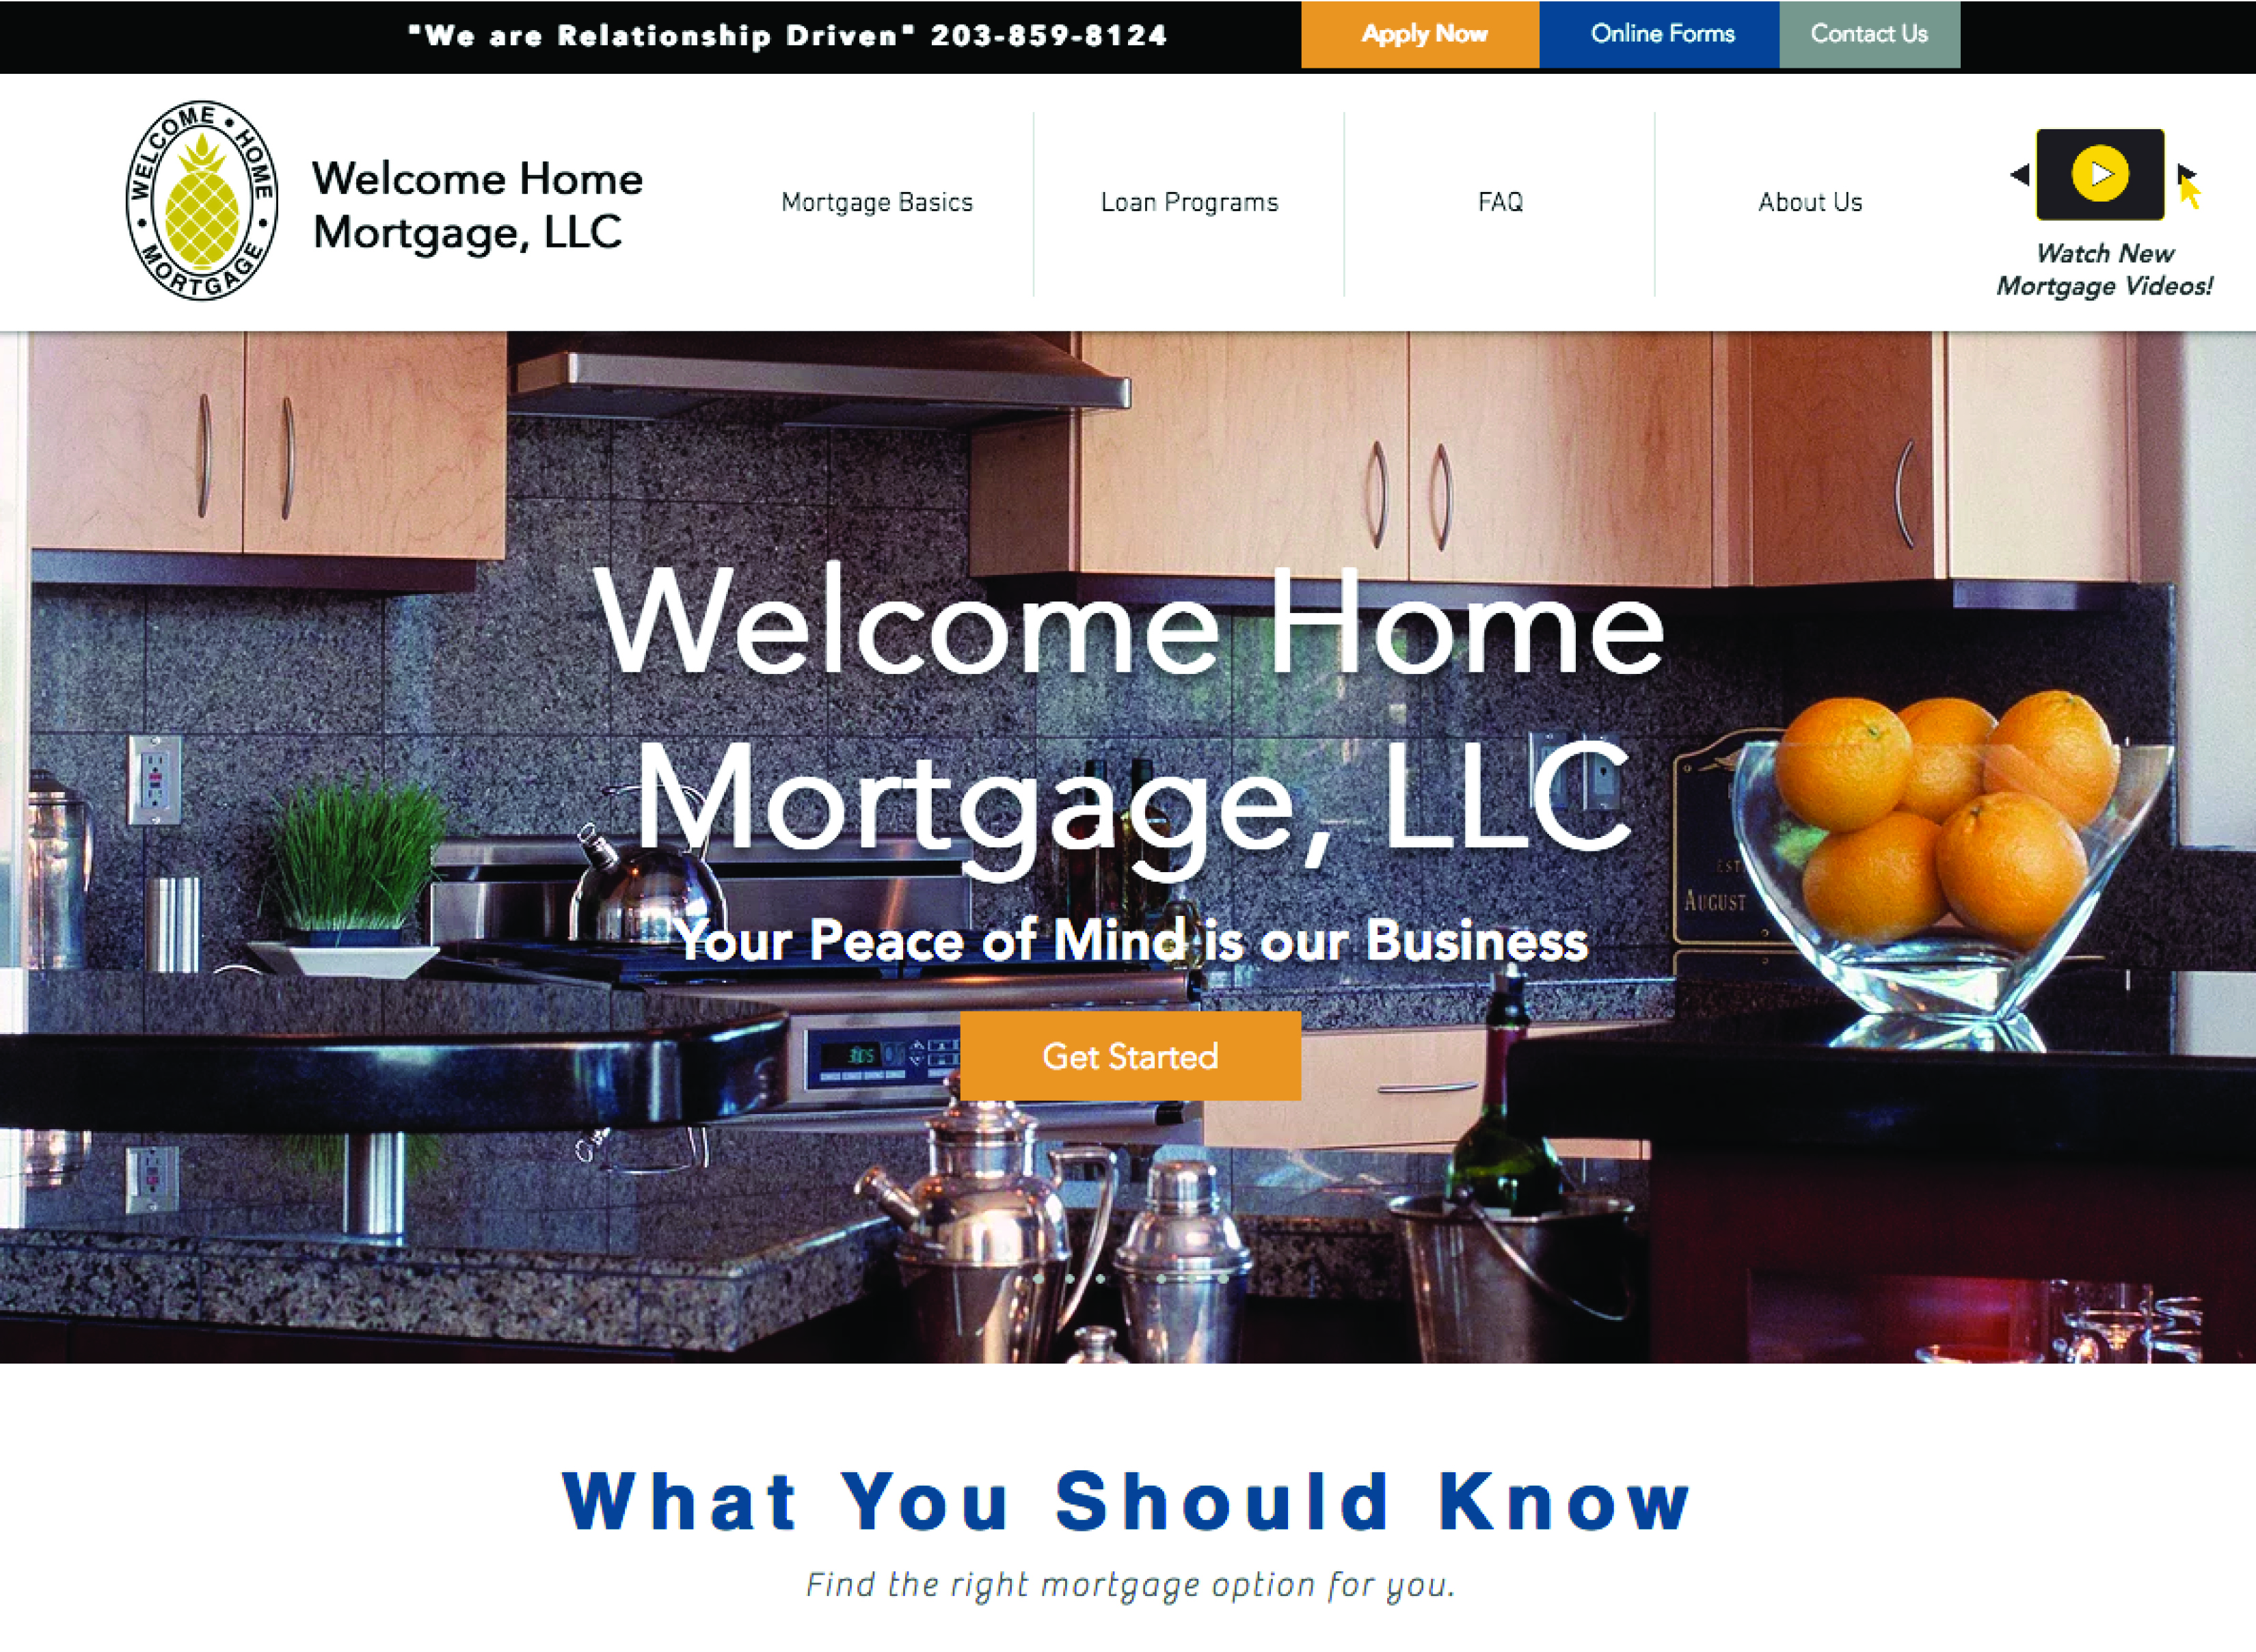 Welcome Home Mortgage